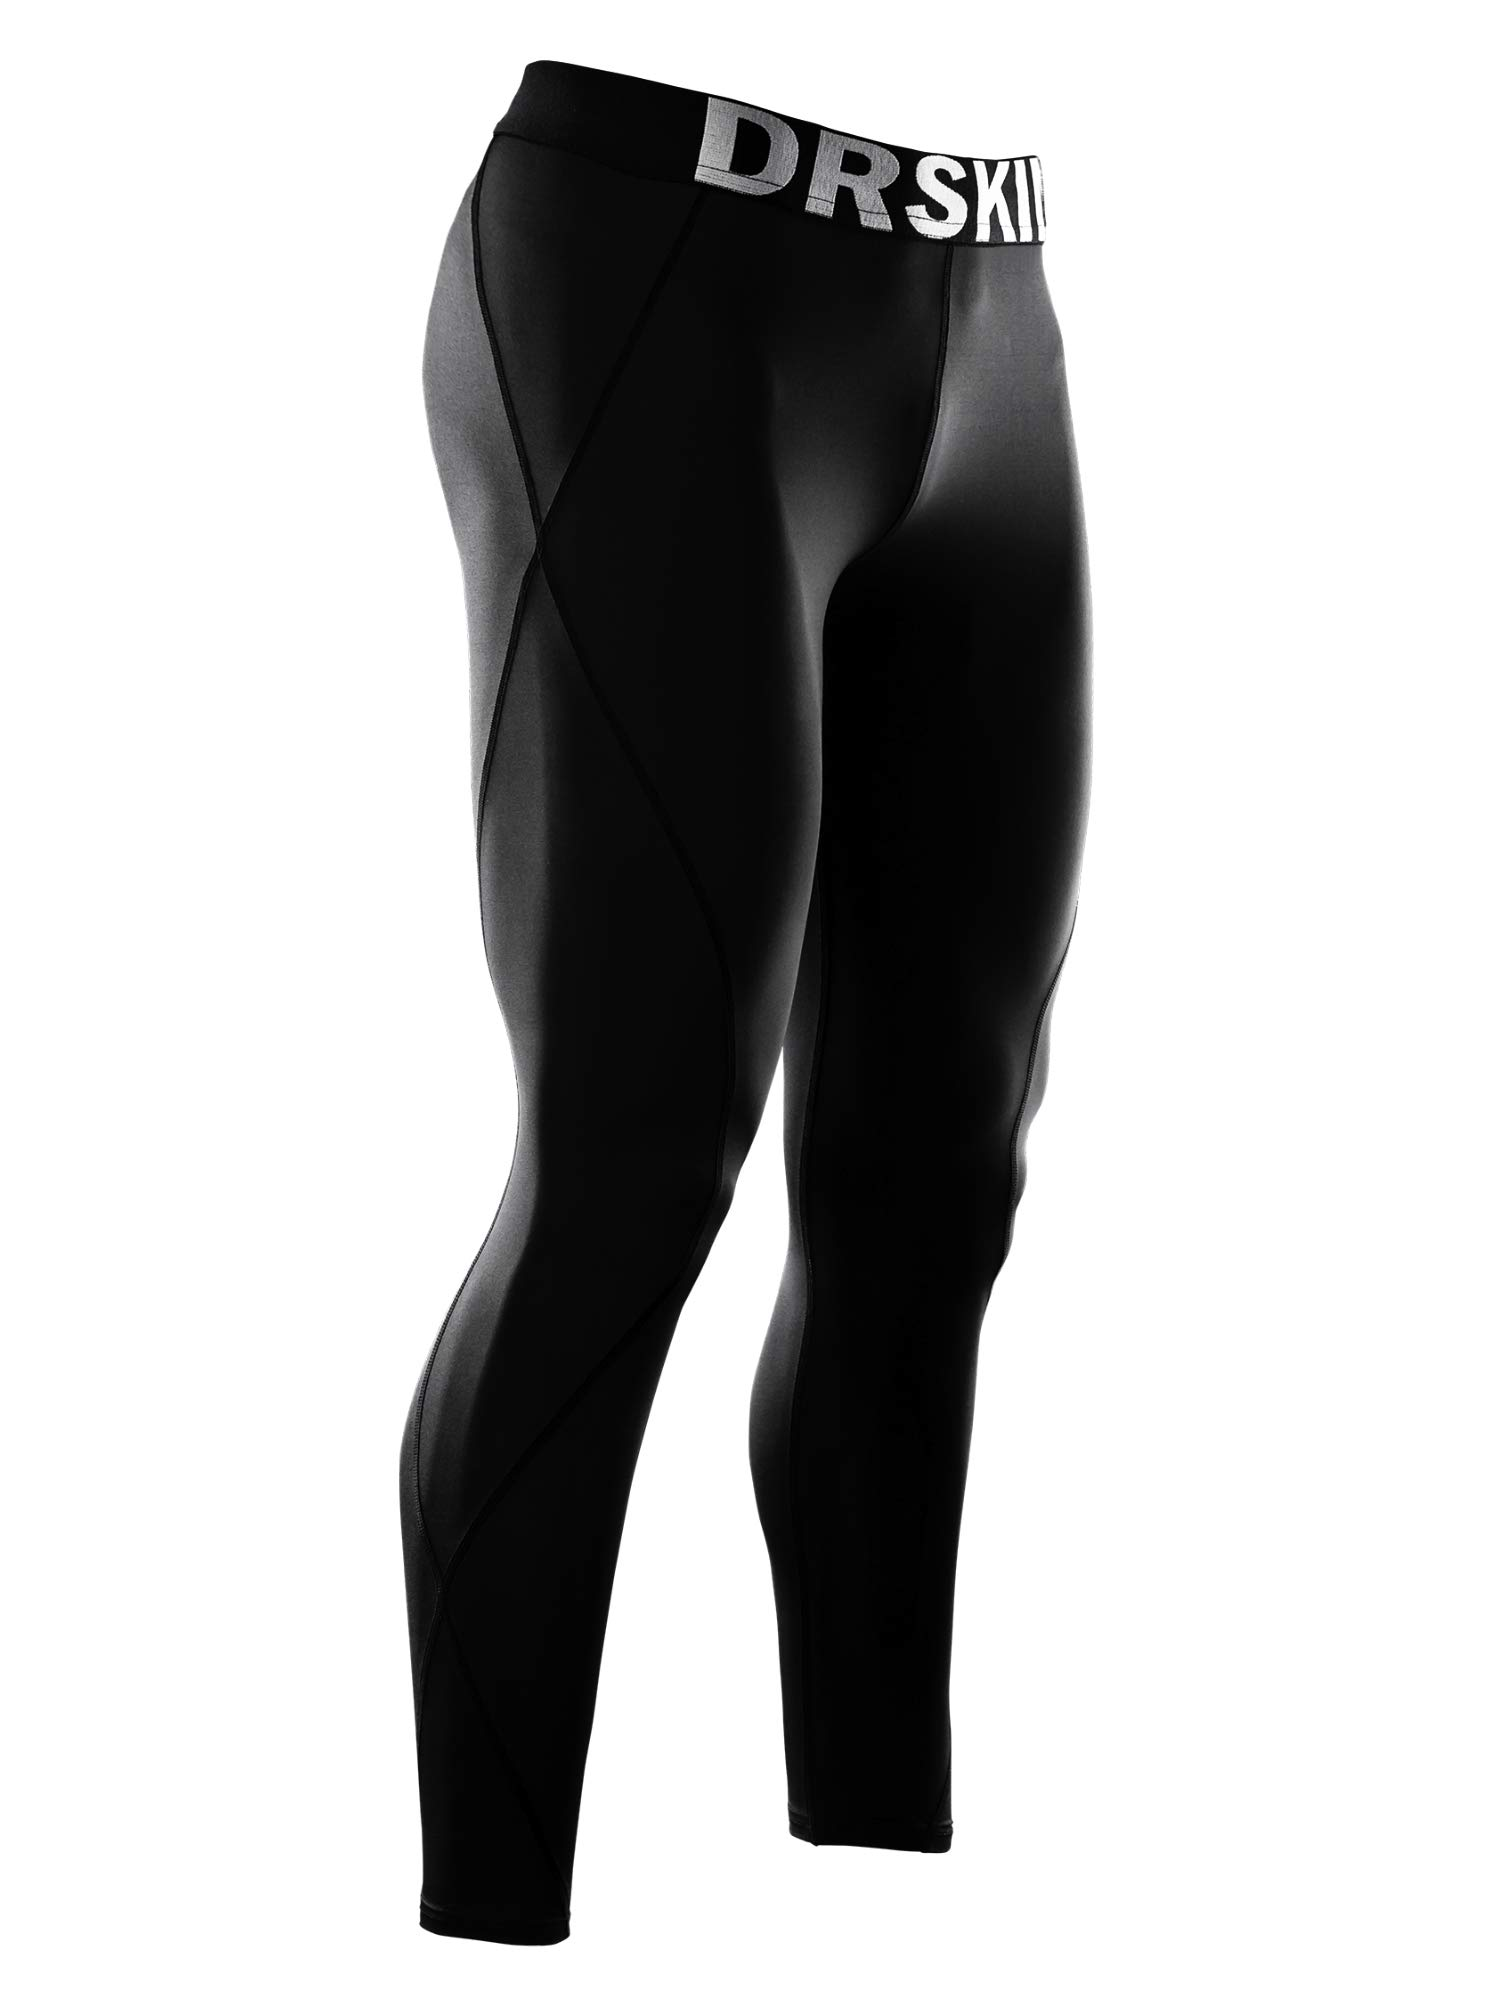 DRSKIN Compression Cool Dry Sports Tights Sliding Shorts